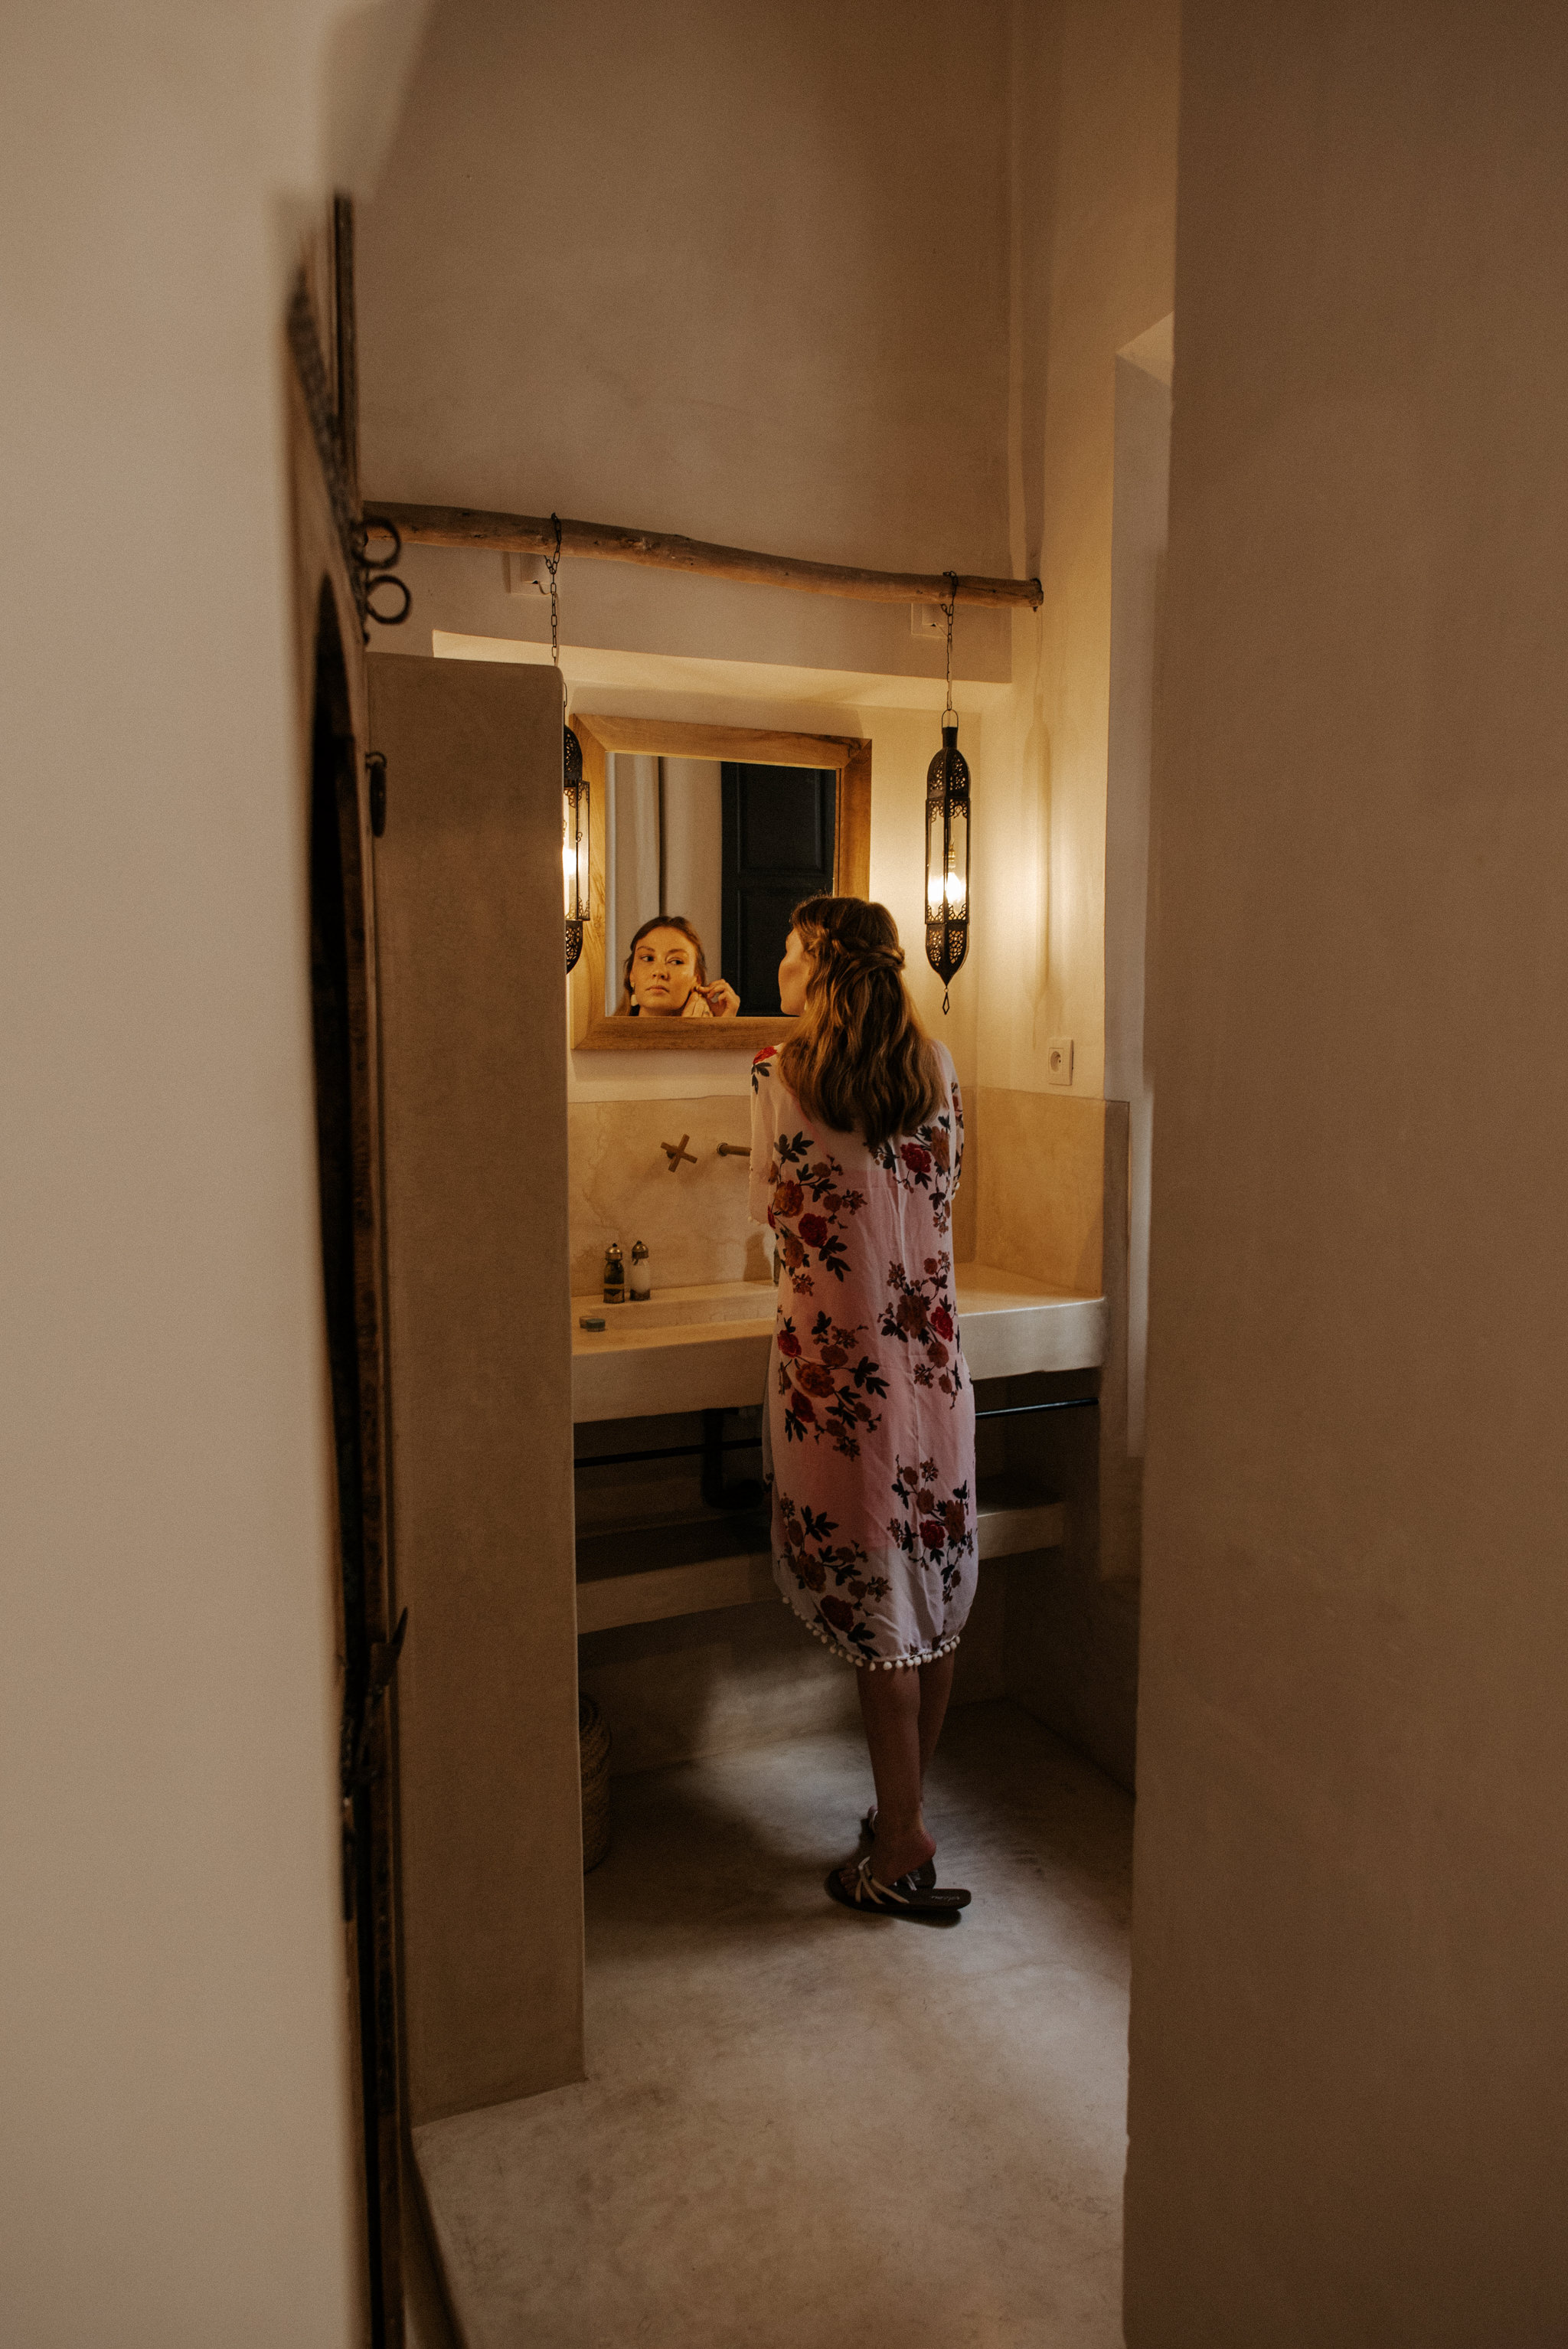 Bride getting ready in bathroom at Riad 42 for intimate Morocco elopement